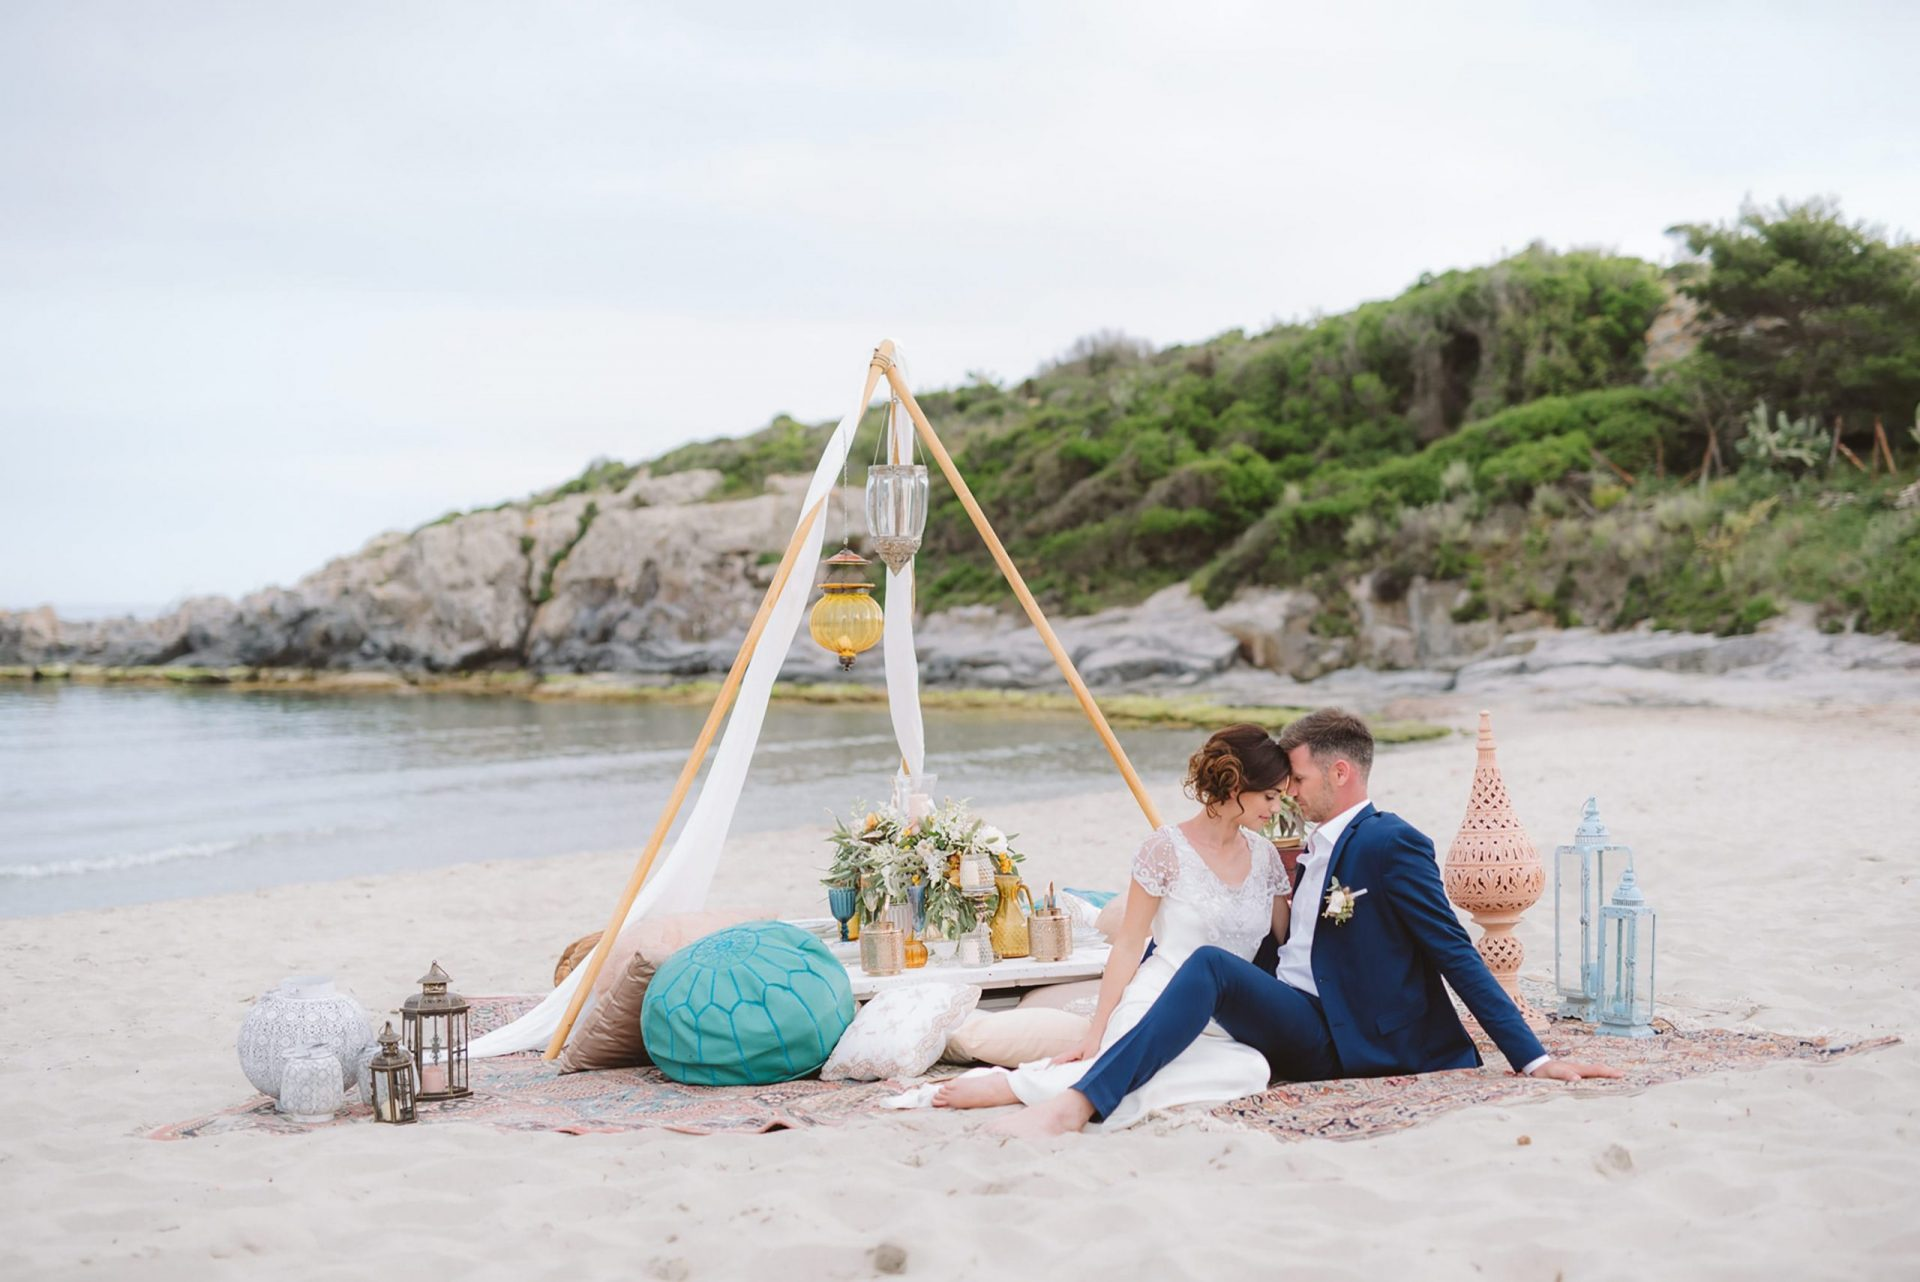 Luxury wedding planning and design Sardinia, Elopement San Pietro Island